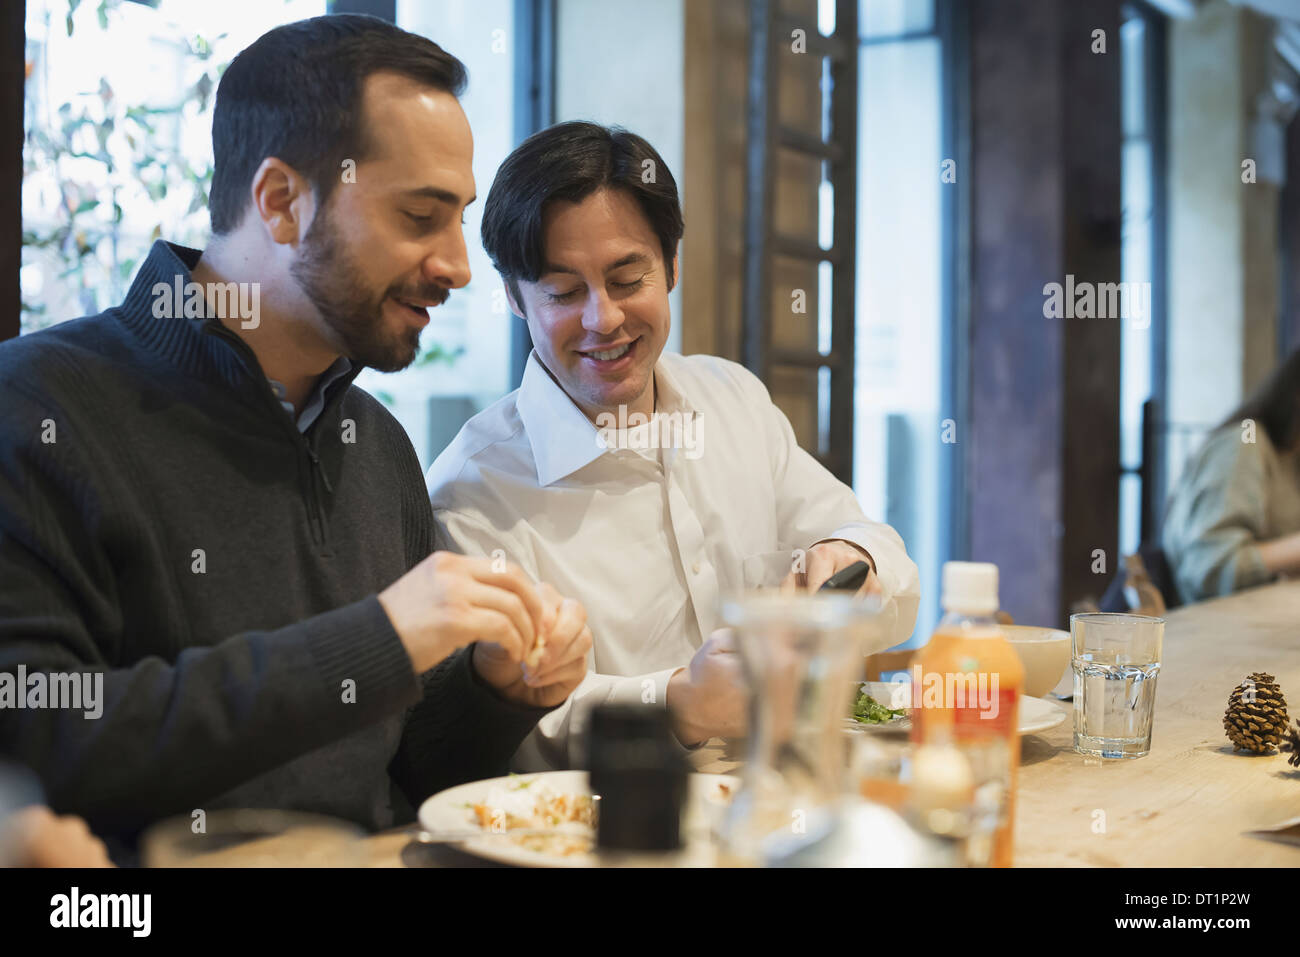 Men sharing text at restaurant table - Stock Image